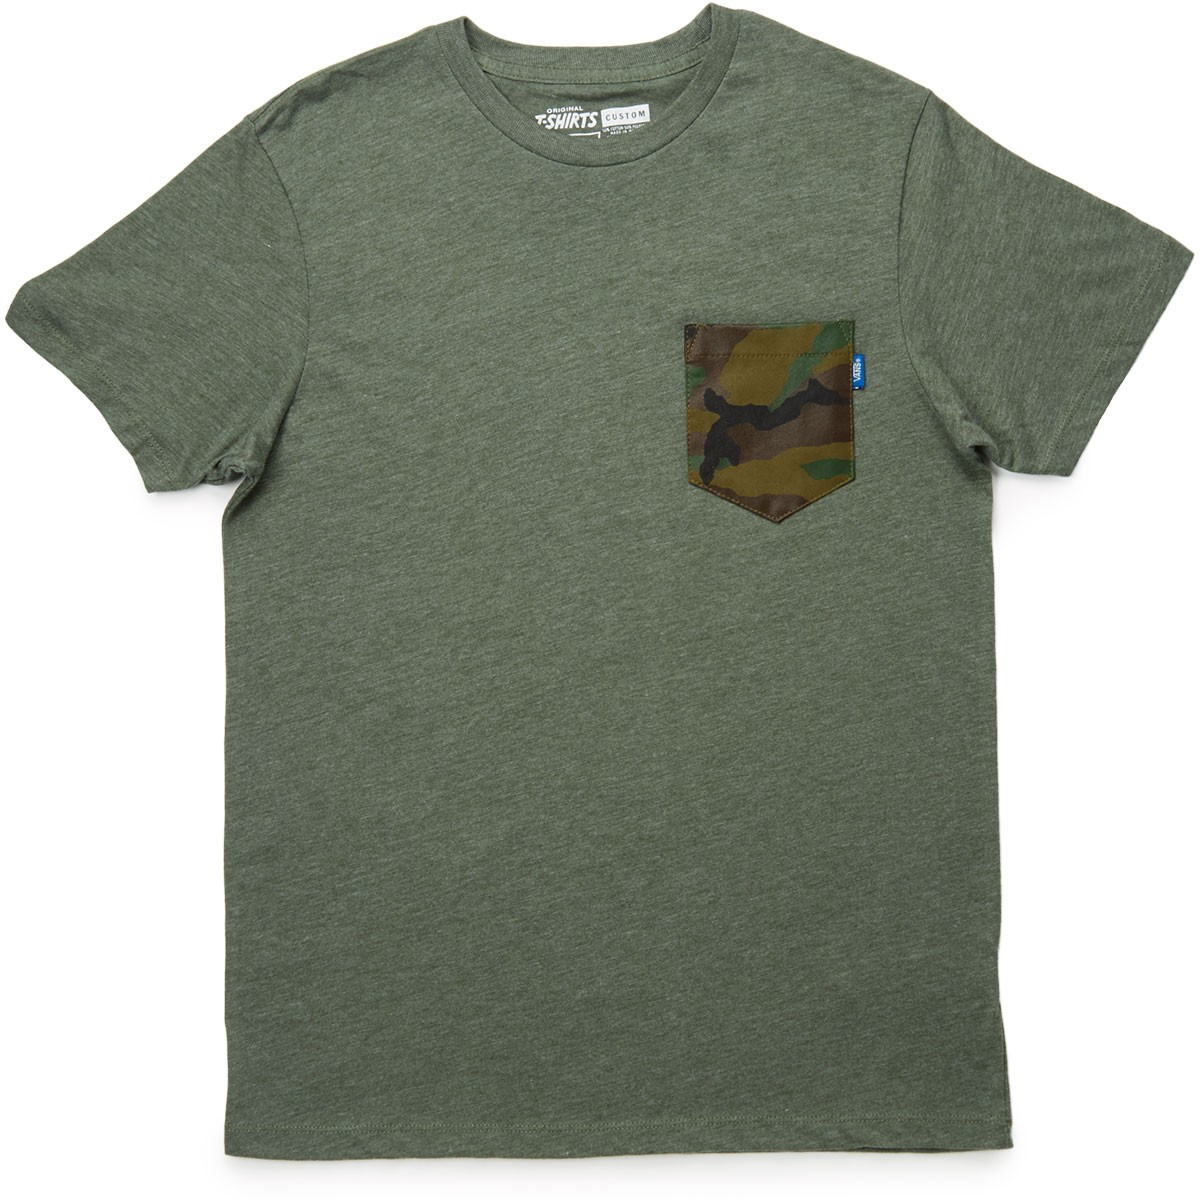 Vans printed pocket t shirt heather olive camo for Pocket t shirt printing